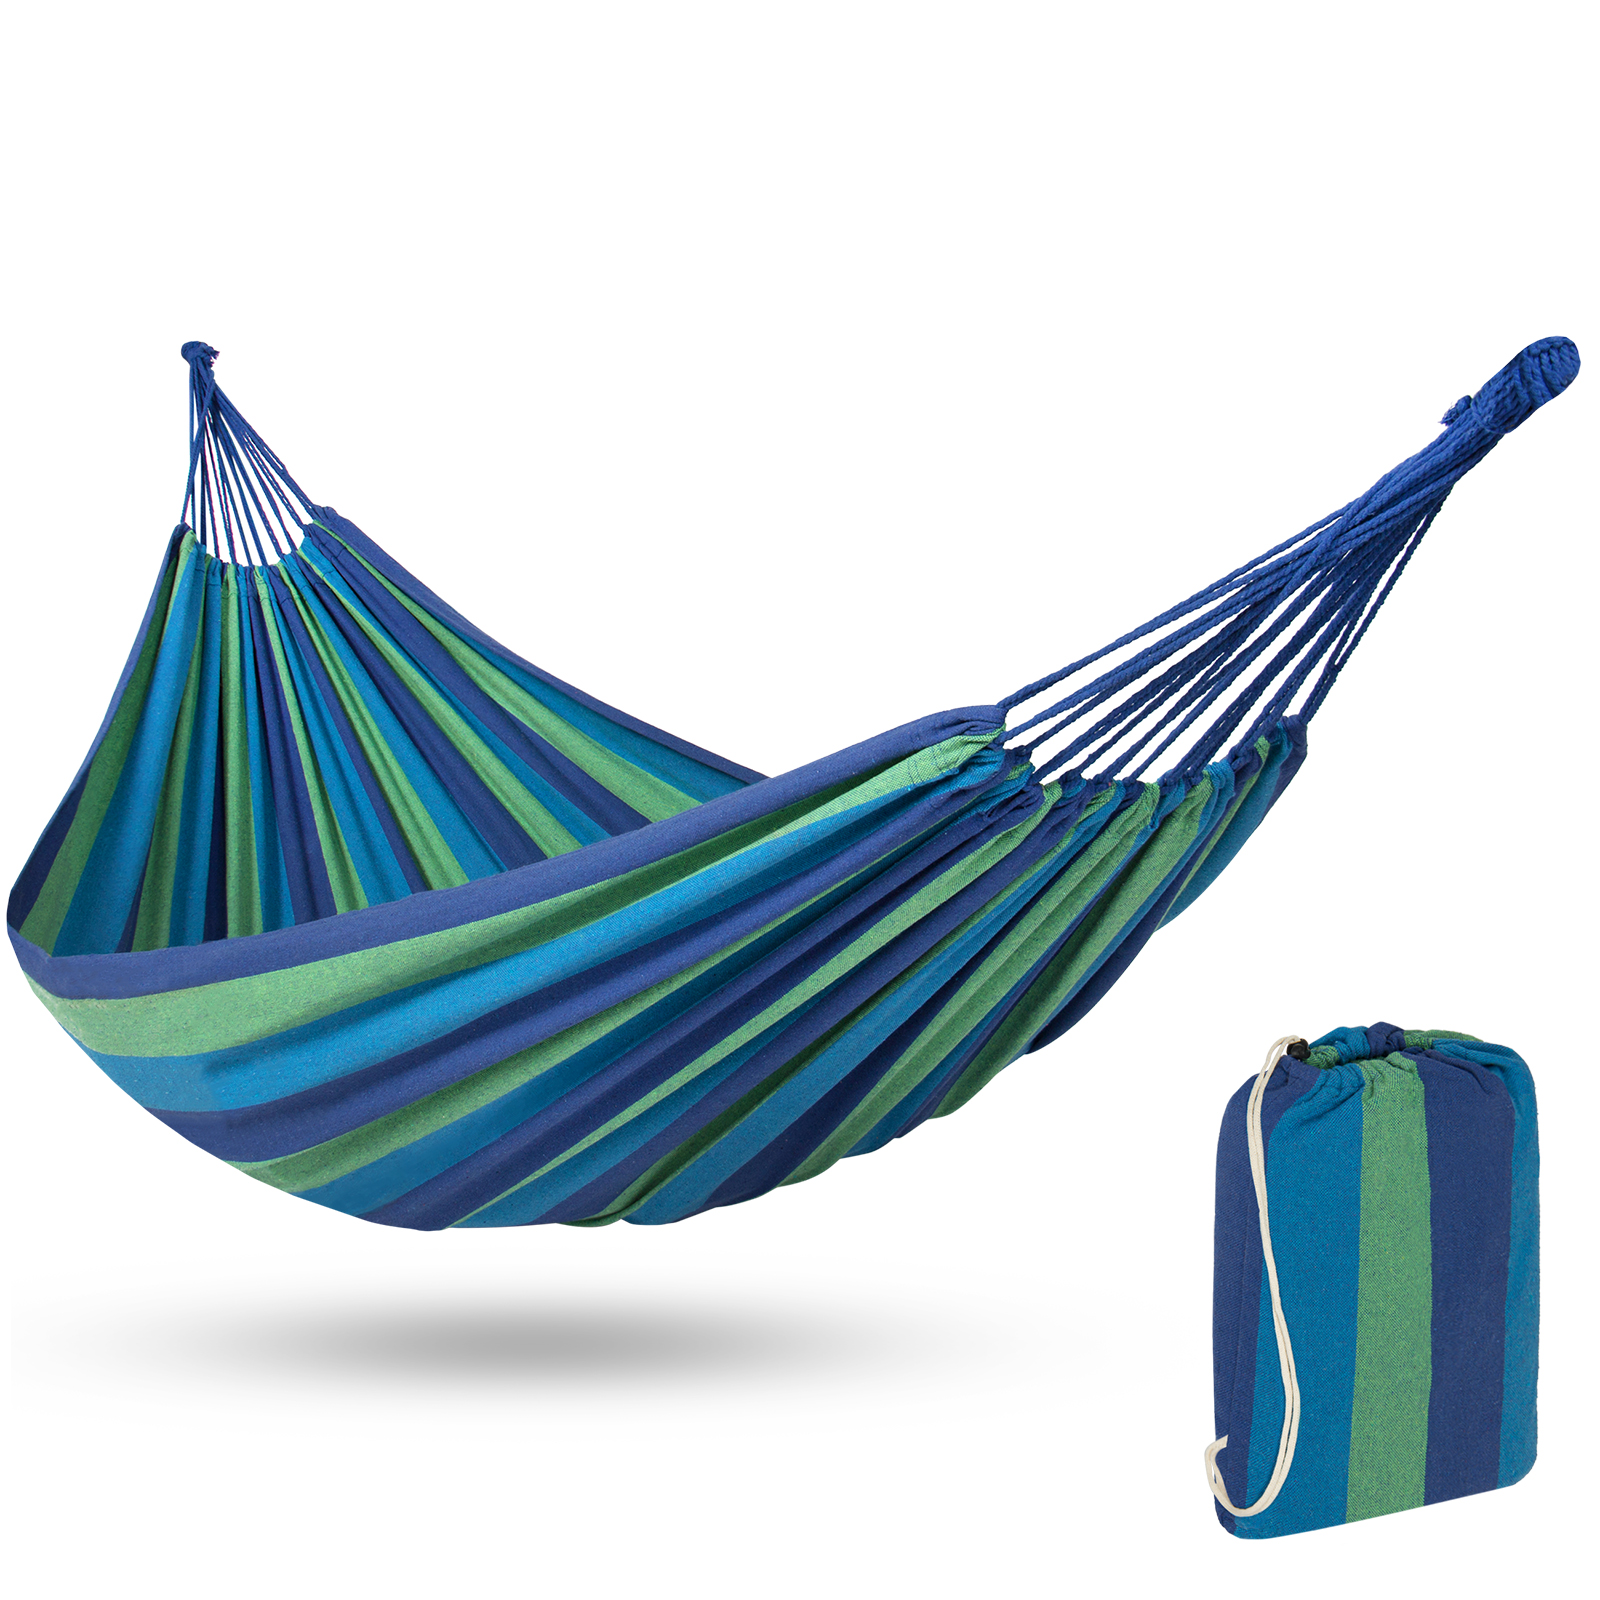 Best Choice Products Cotton Brazilian 2-Person Double Hammock Bed w/ Carrying Bag - Blue